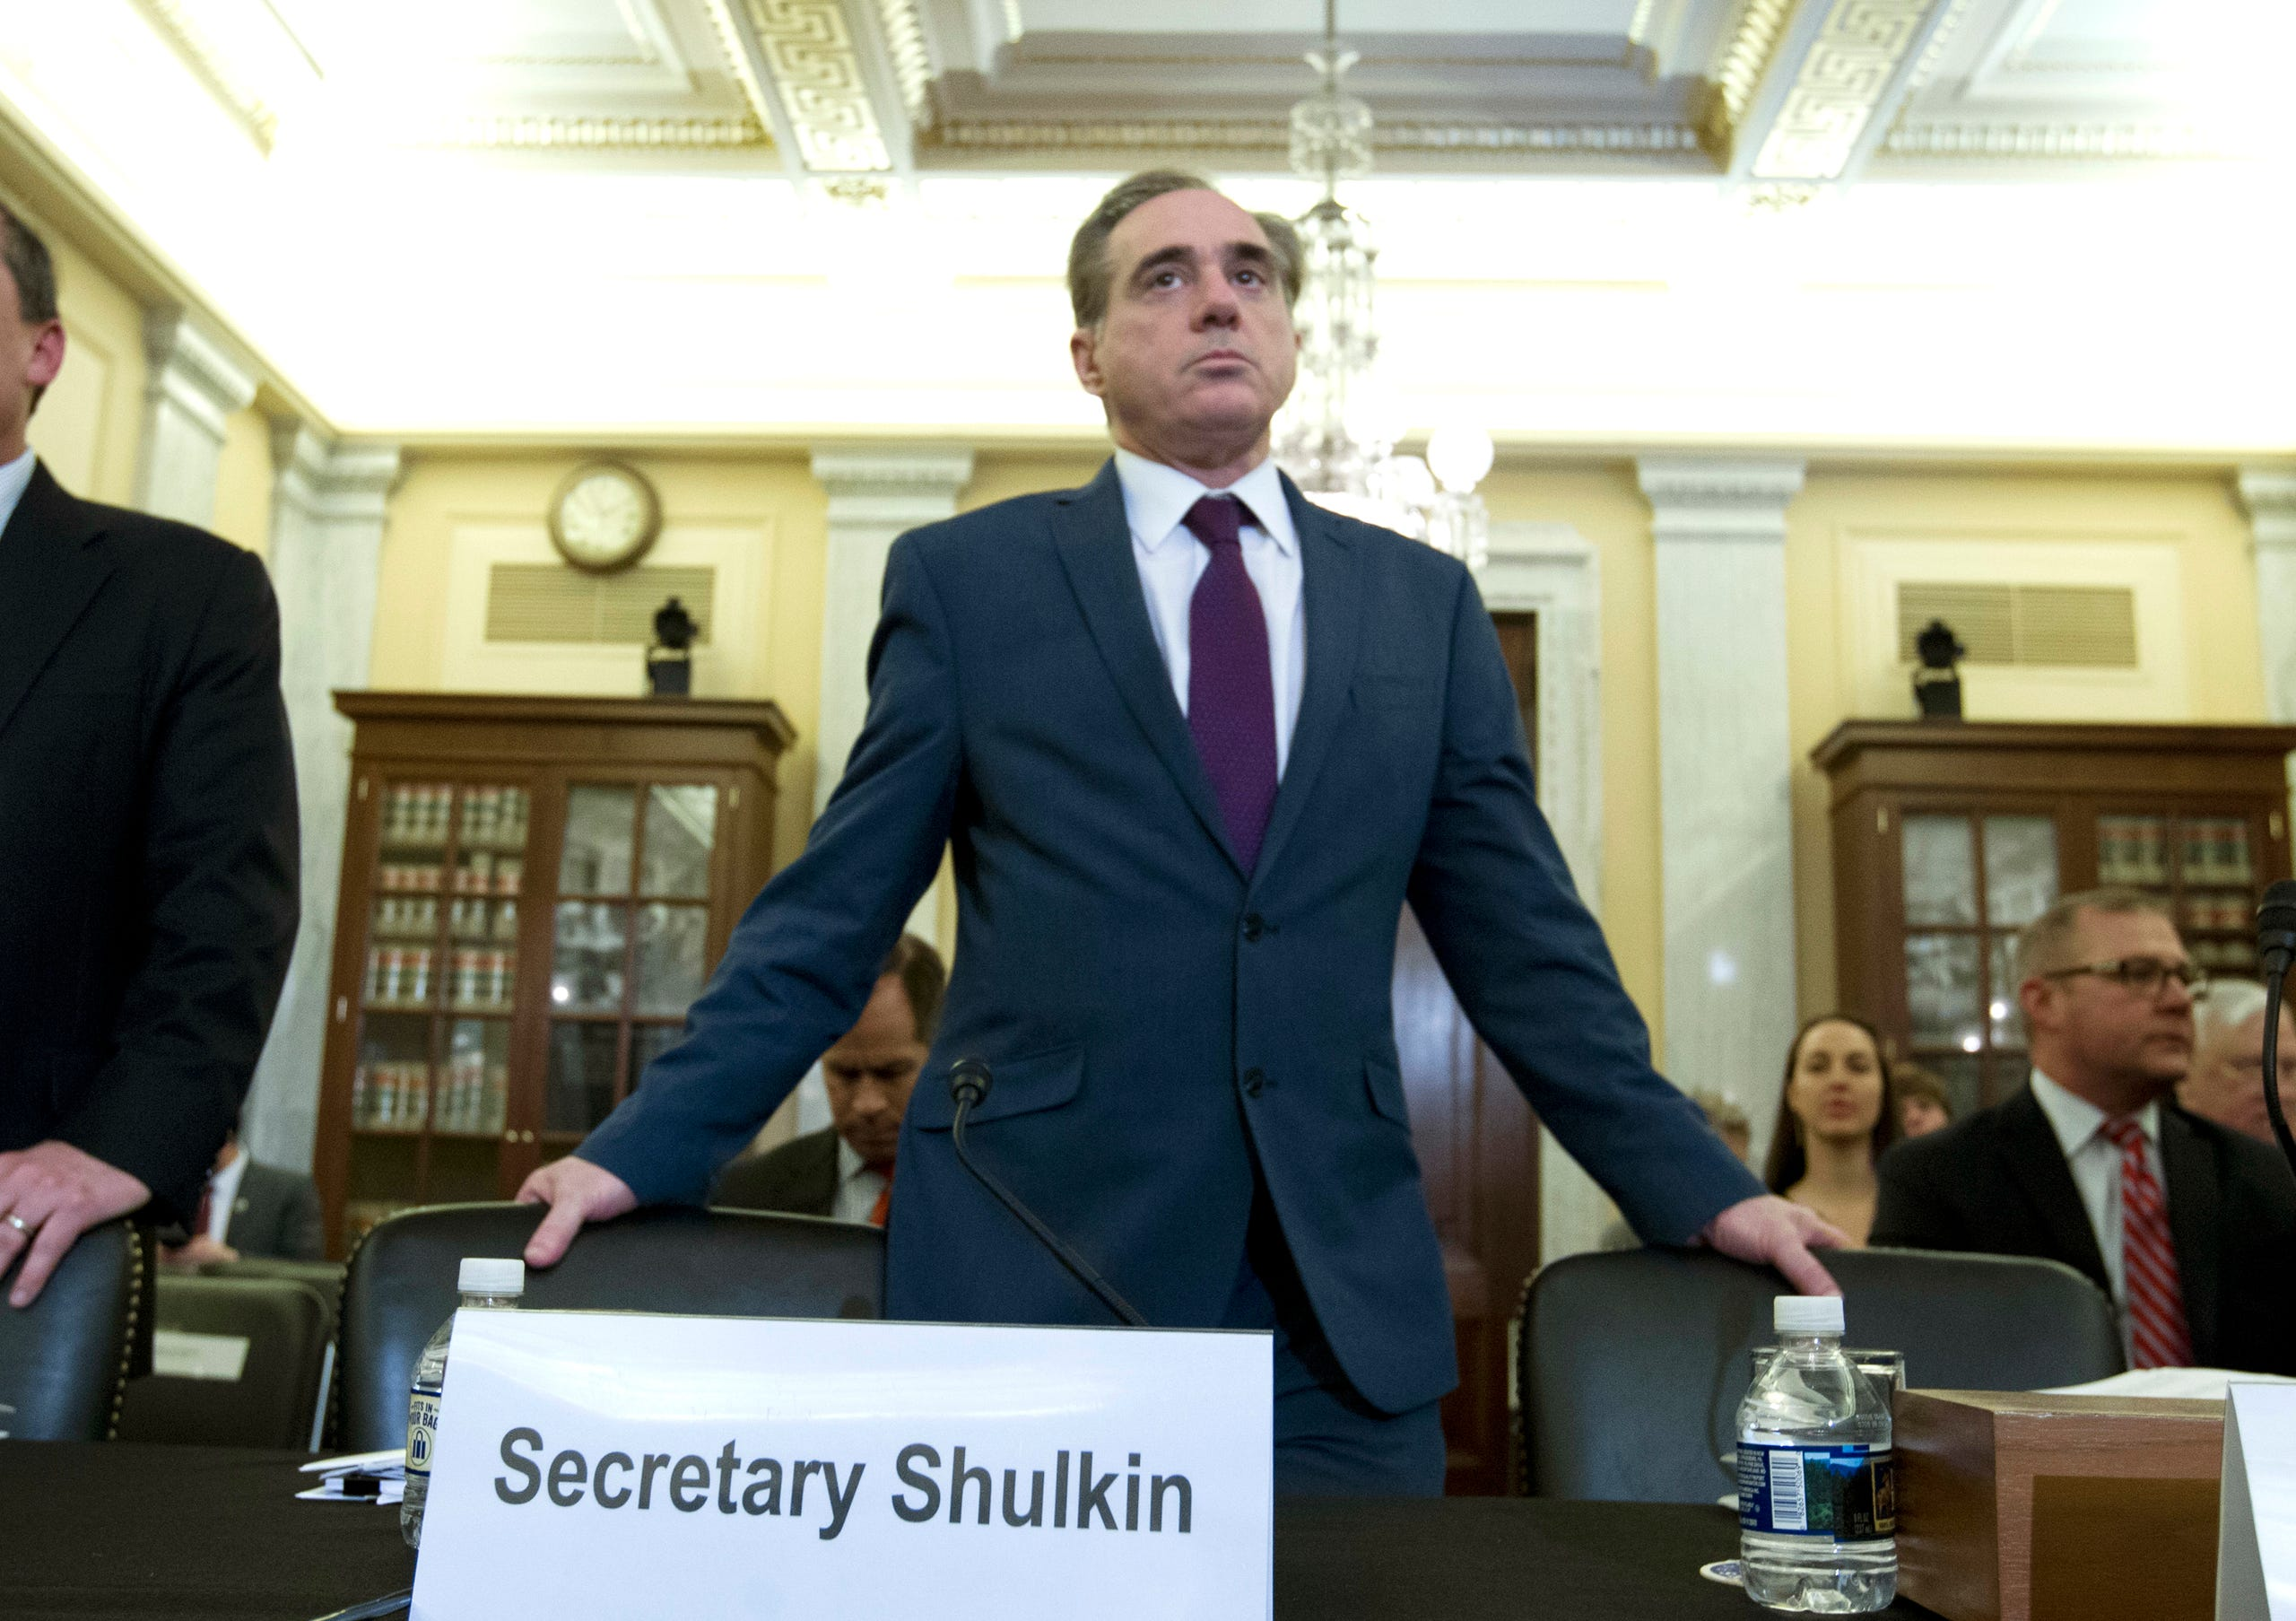 Embattled Veterans Affairs Secretary David Shulkin's ouster was announced March 28, 2018. He arrives to testify on veterans programs on Capitol Hill, March 21, 2018.